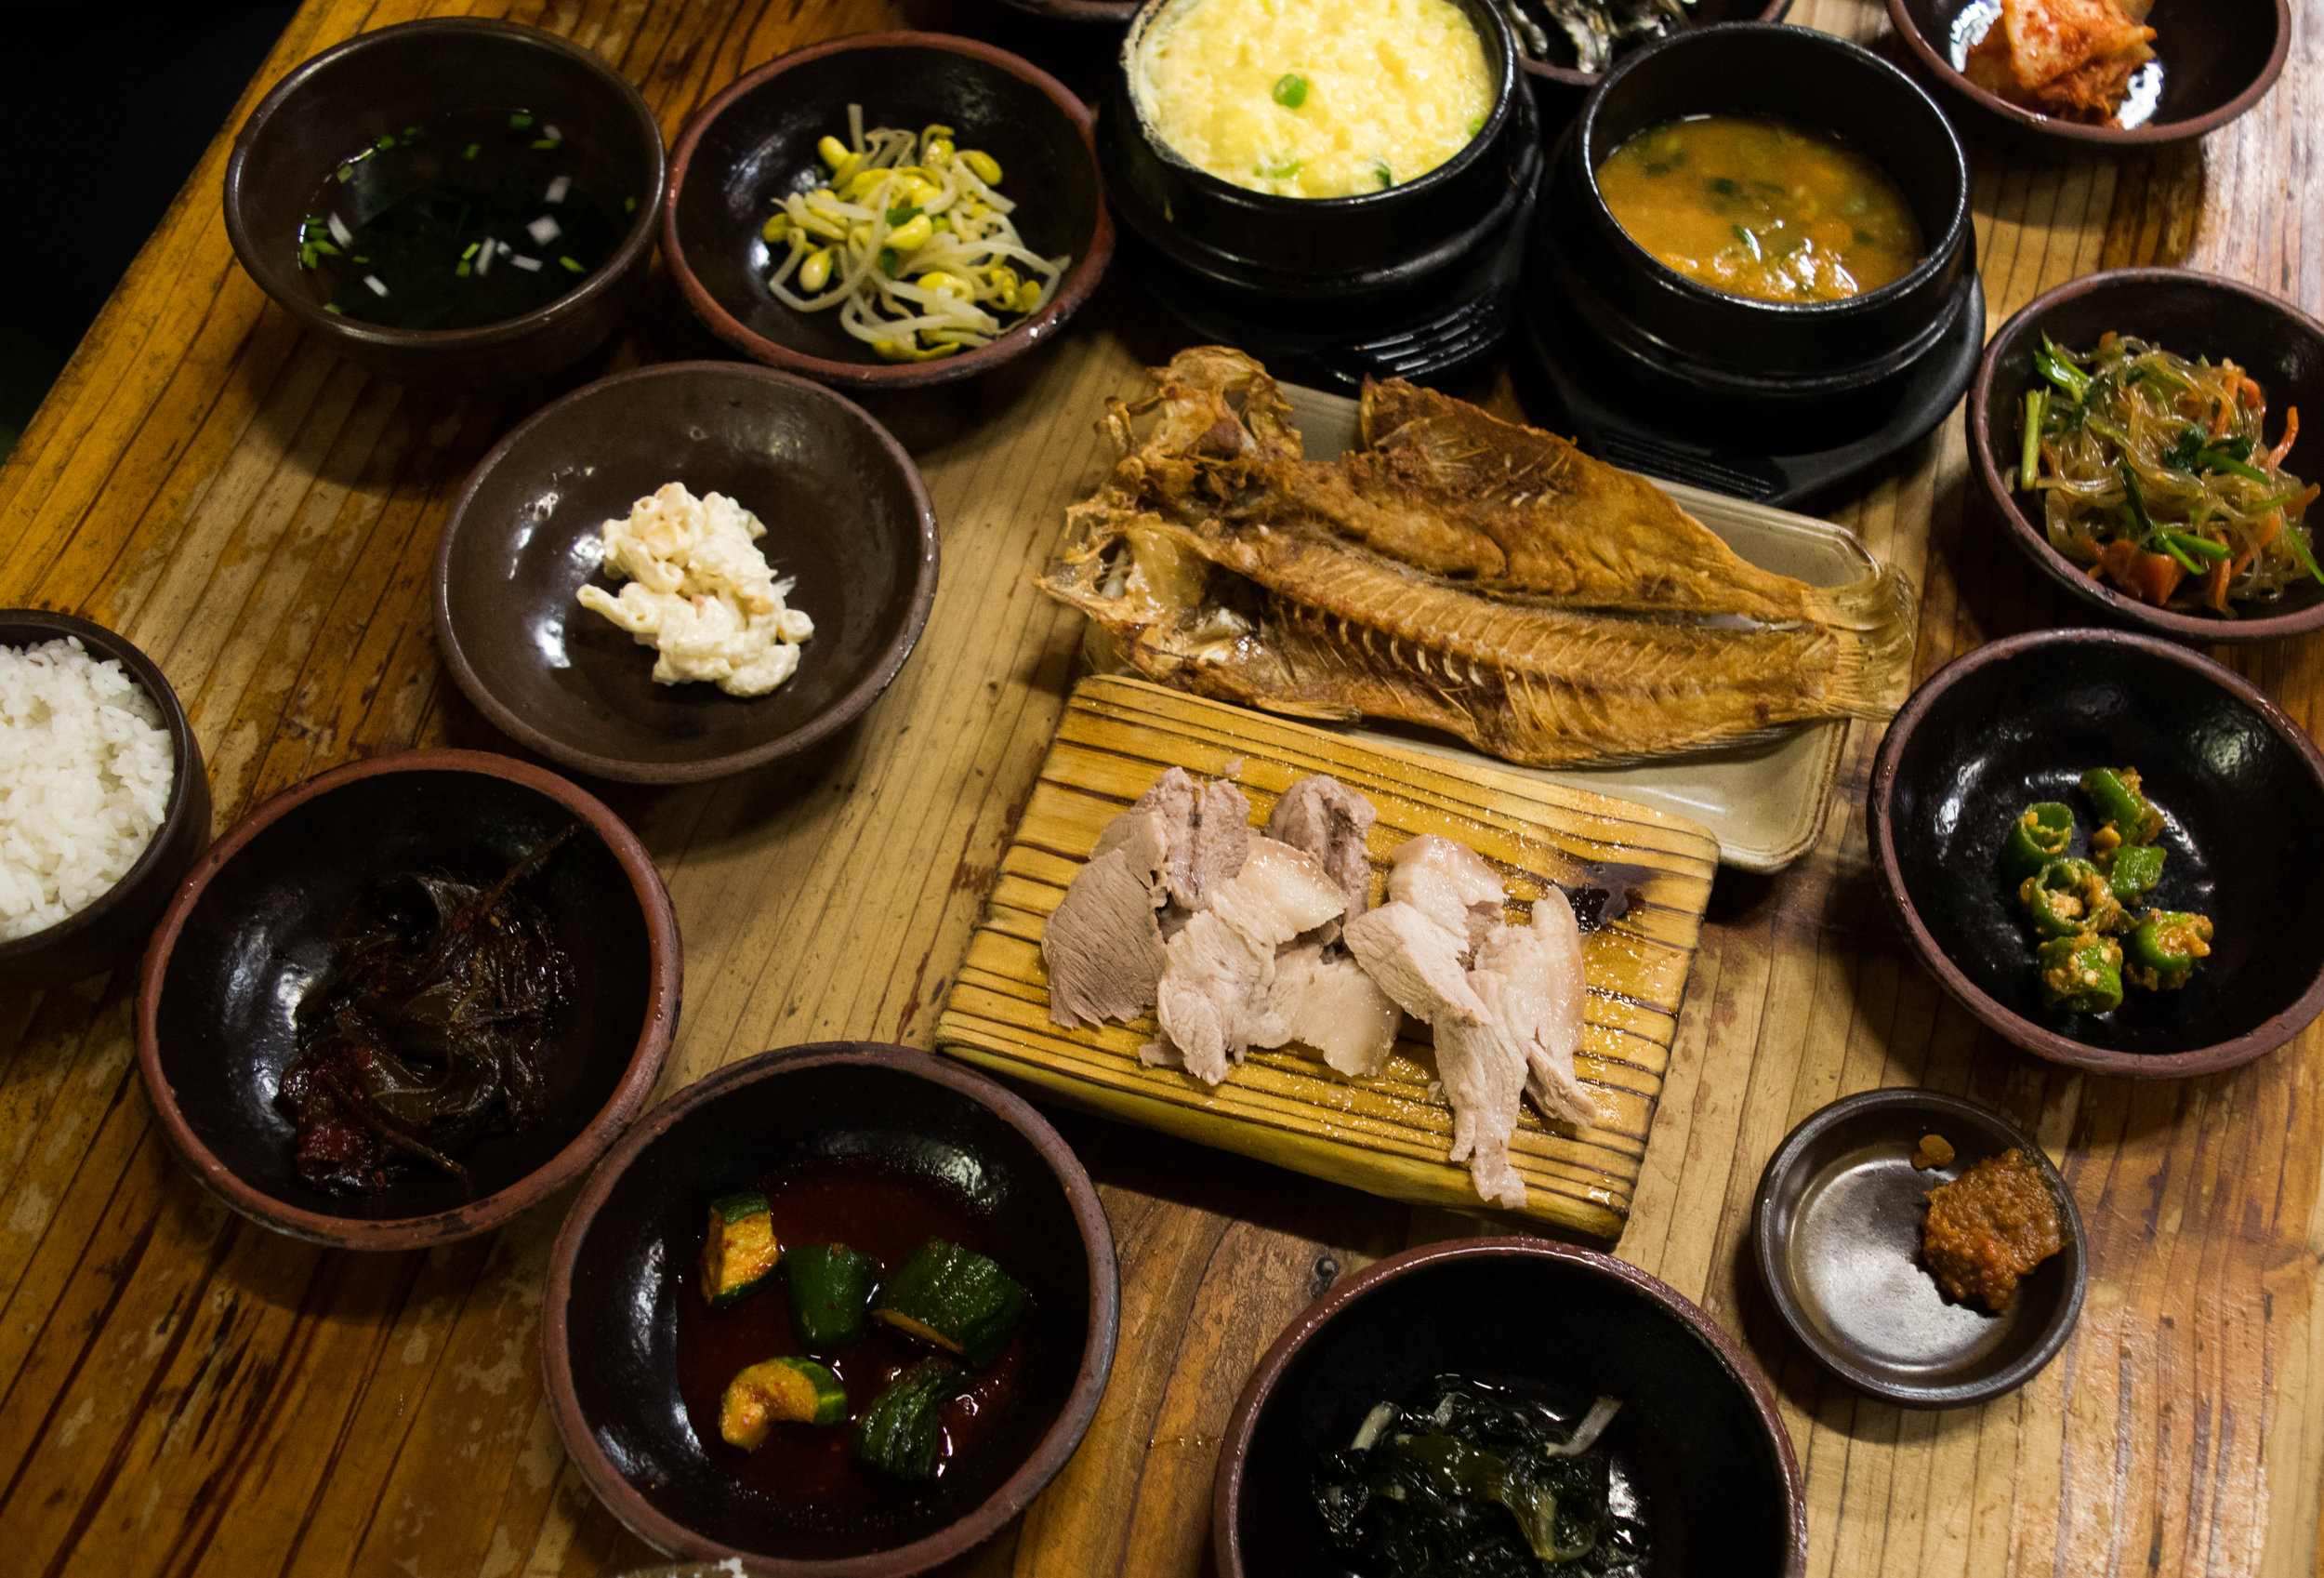 black pork, fried fish, and everything else we could possibly want.